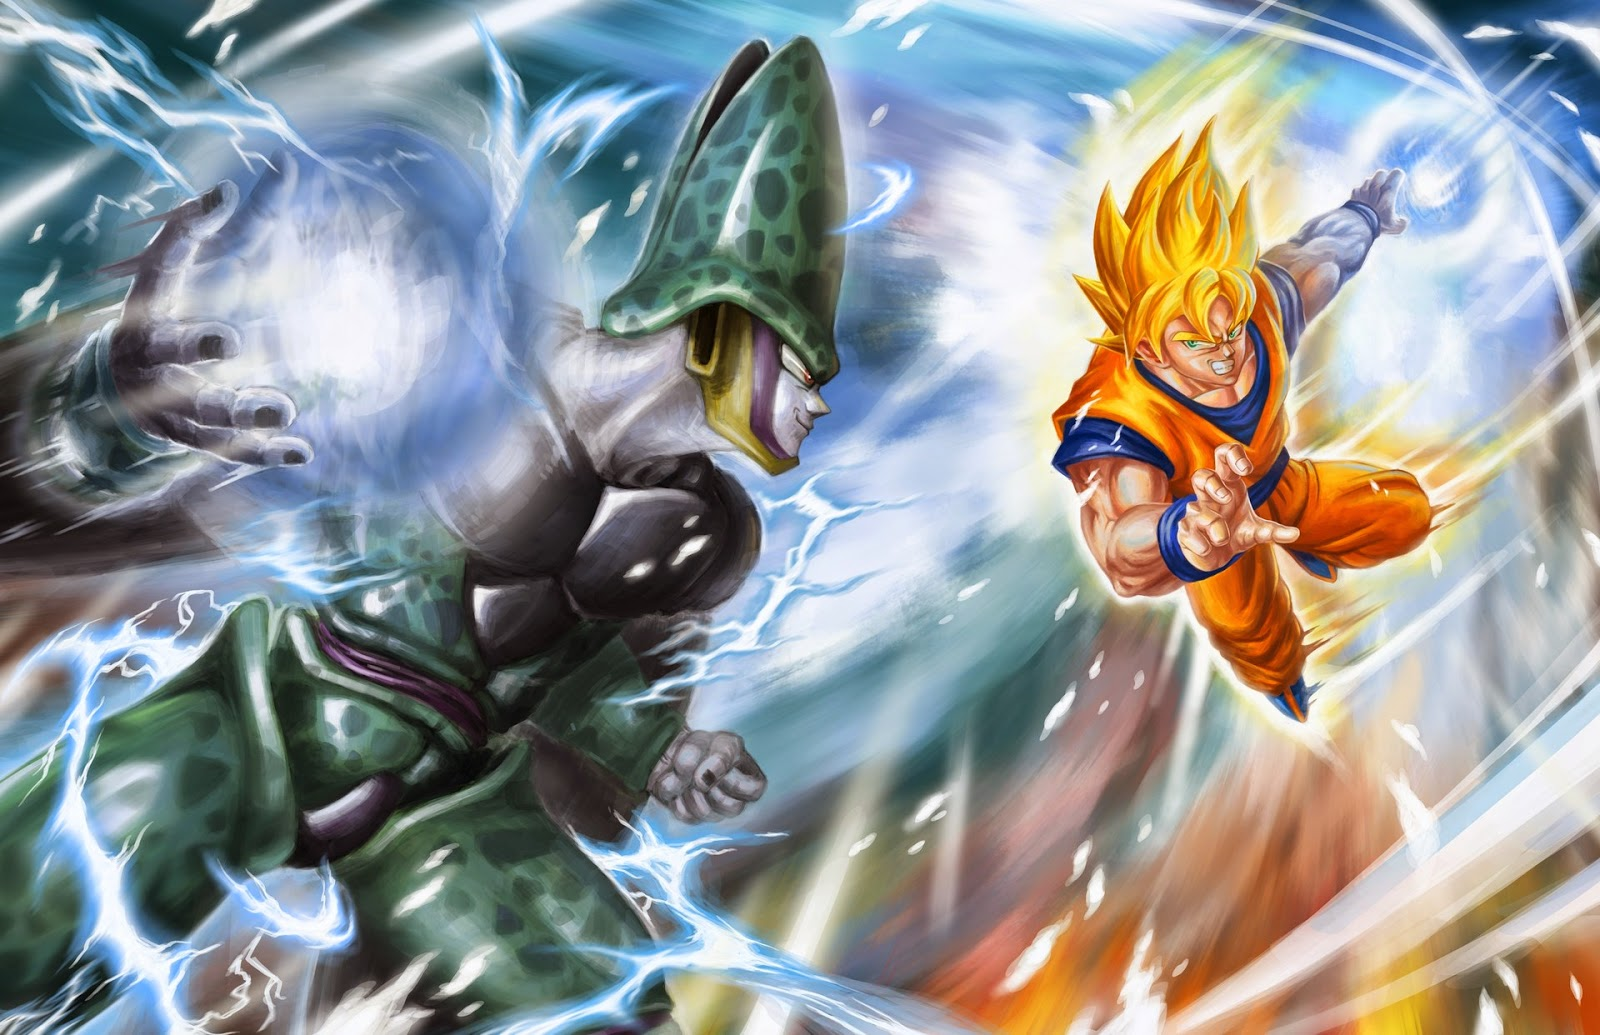 Goku vs Cell Dragon Ball Z   Fondos de Pantalla HD   Wallpapers HD 1600x1035